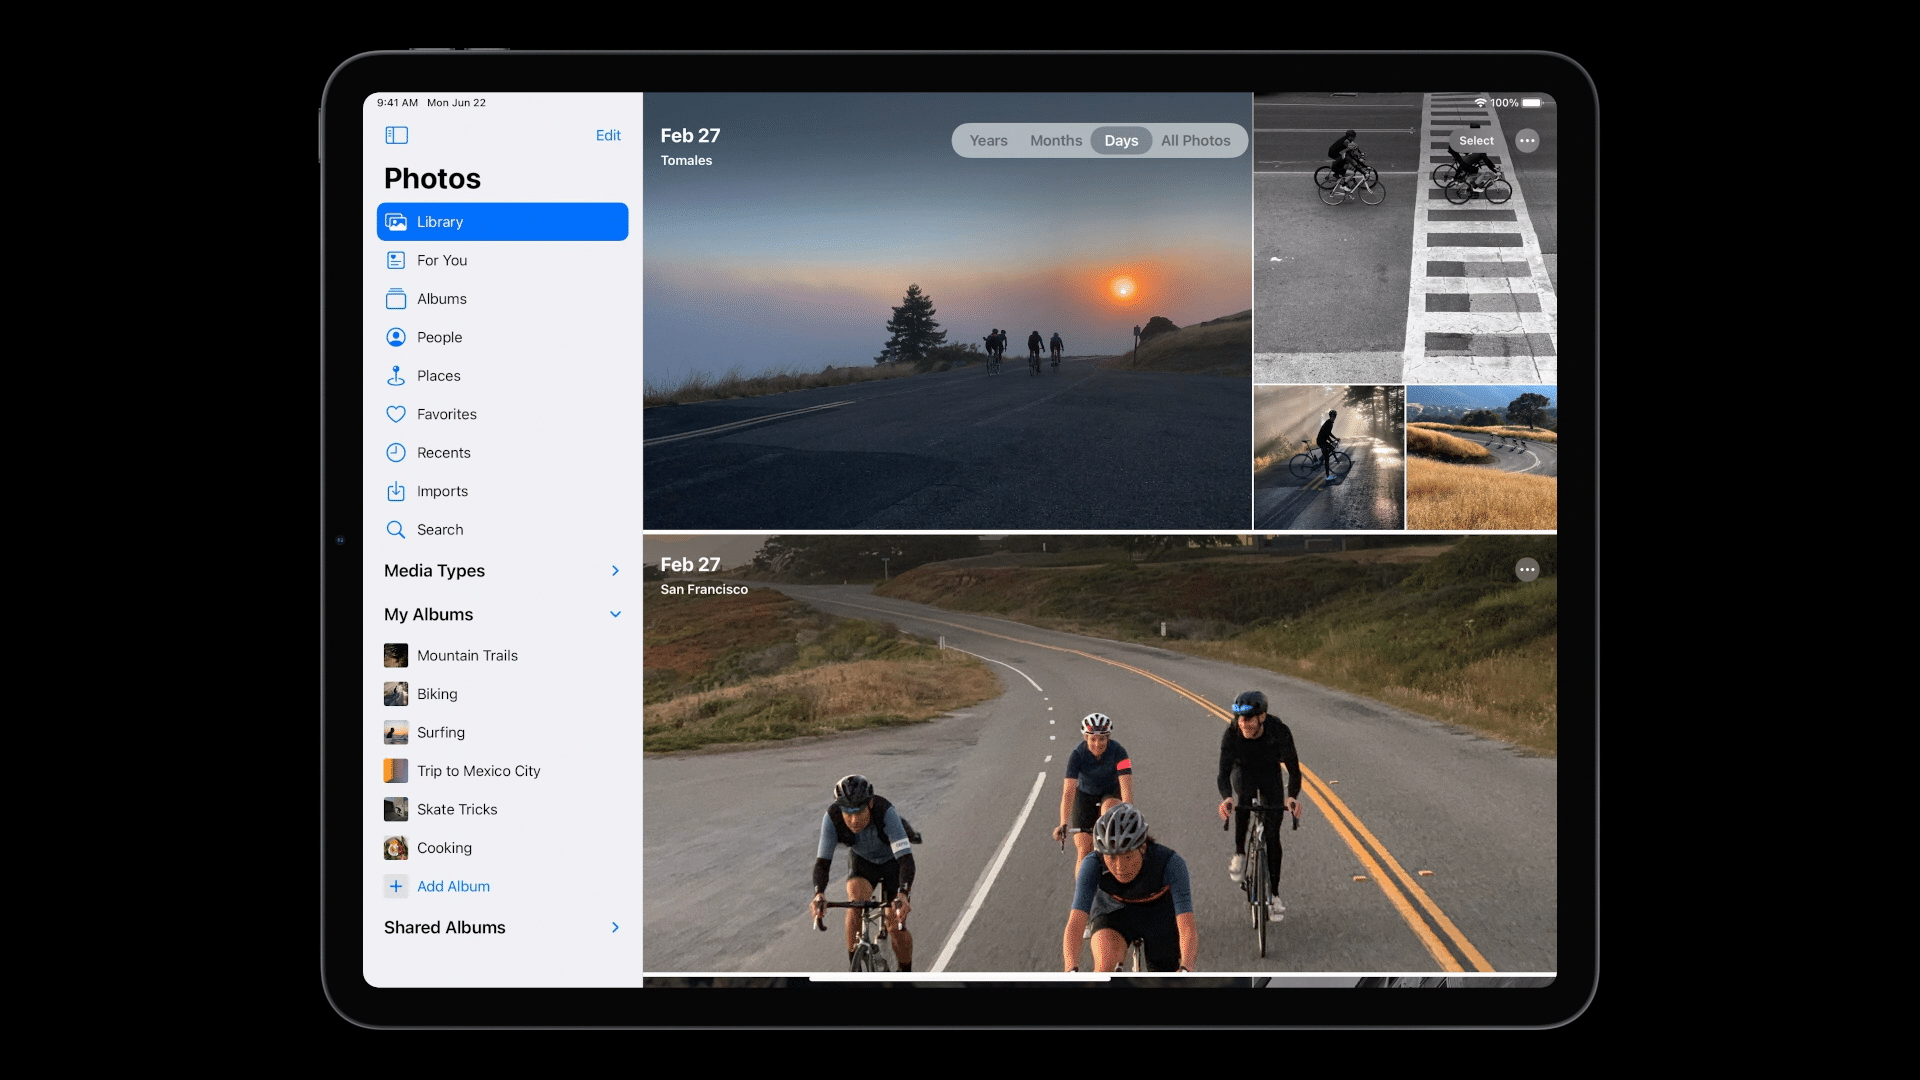 Low Power Mode comes to the iPad with iPadOS 14